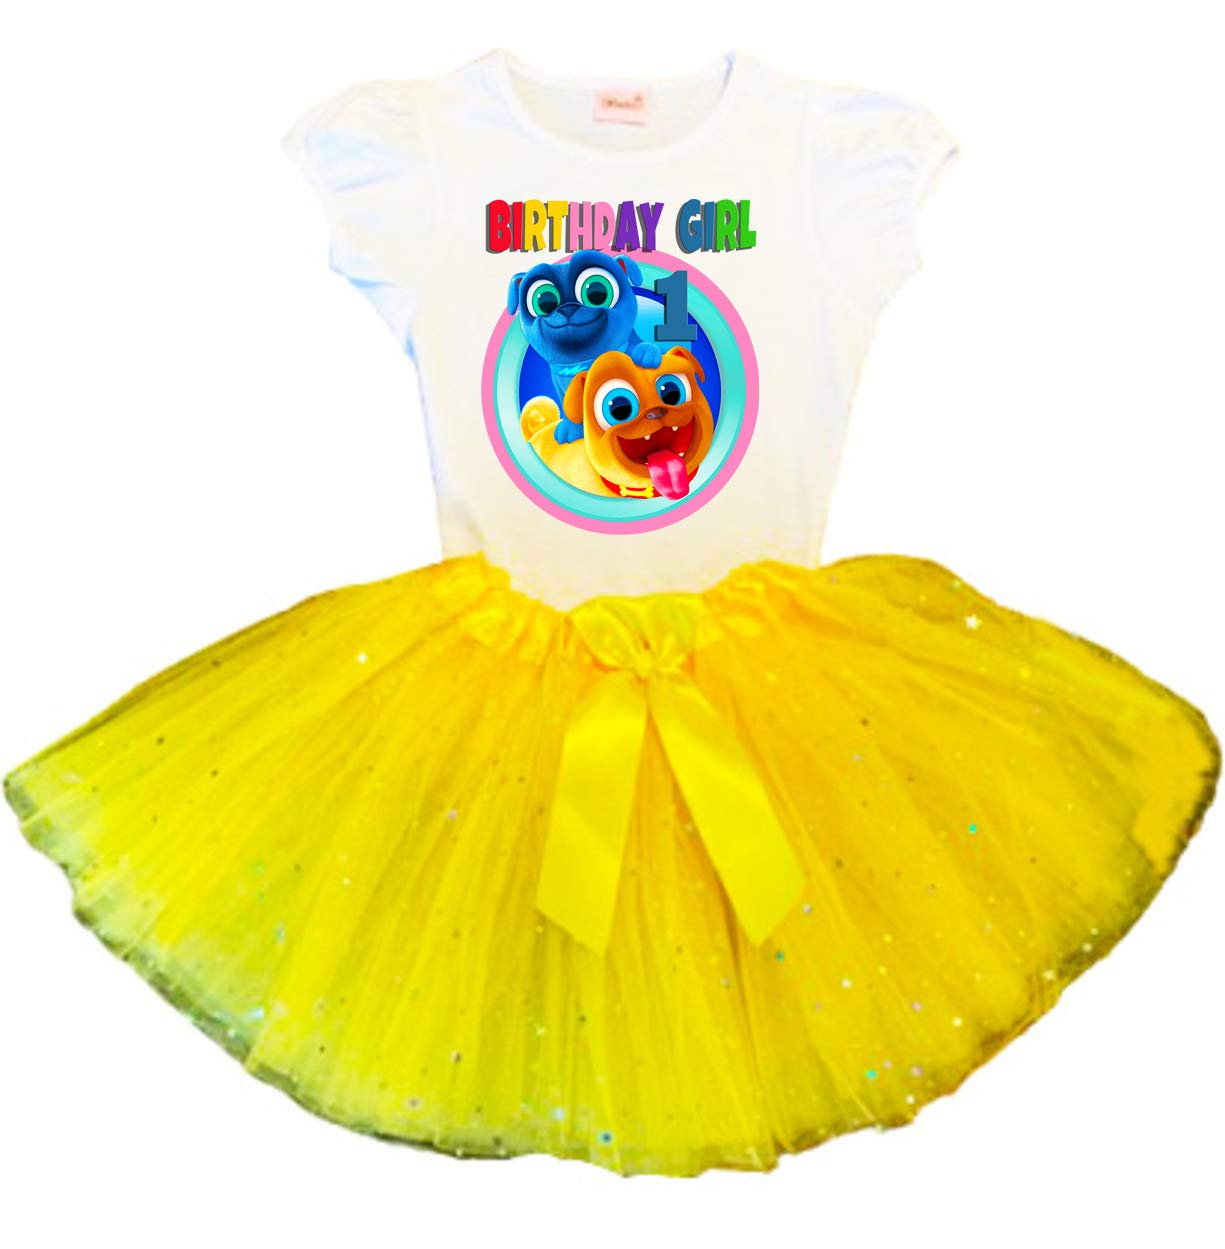 Puppy Dog Pals Large discharge sale Birthday Tutu Max 71% OFF Yellow Tut Party Dress 1st